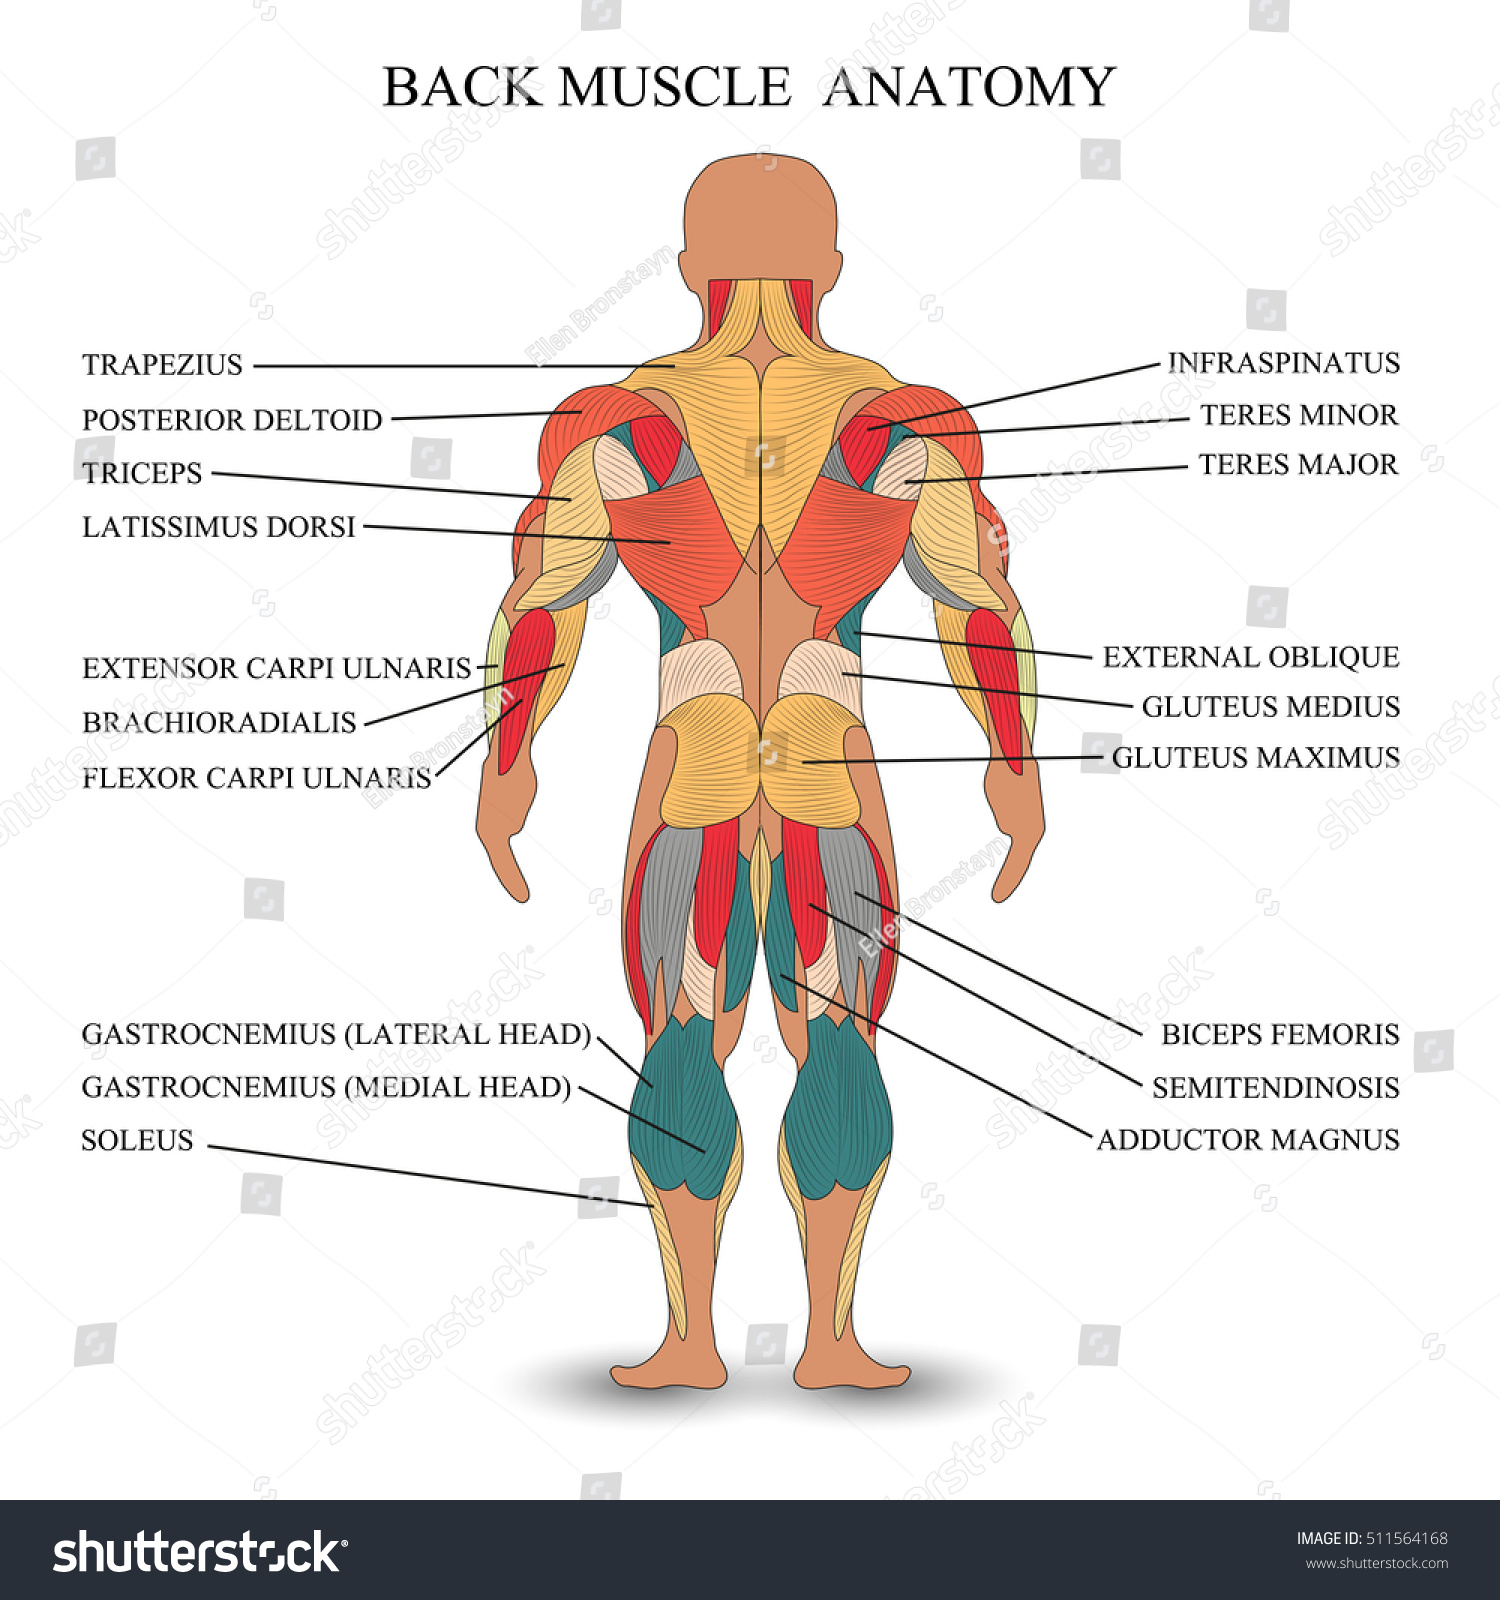 Anatomy human muscles back template medical em ilustrao stock anatomy of human muscles in the back a template for medical tutorial banner ccuart Image collections